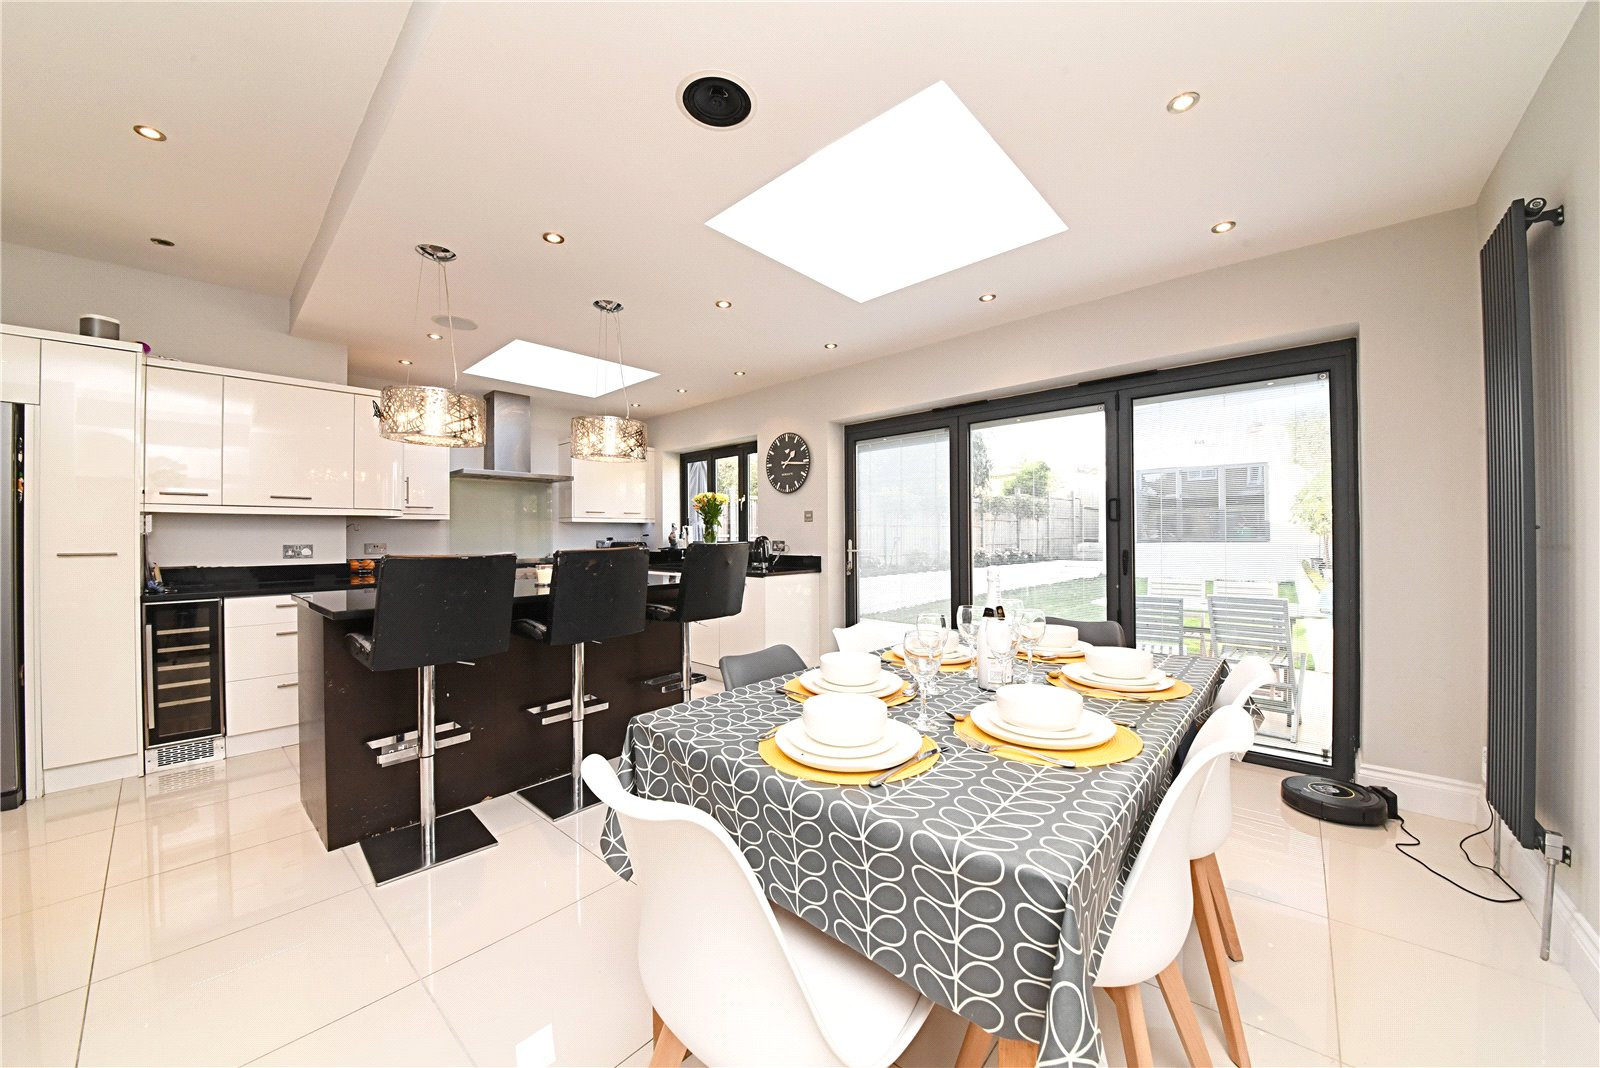 4 bed house for sale in Friern Barnet, N11 1HN 5